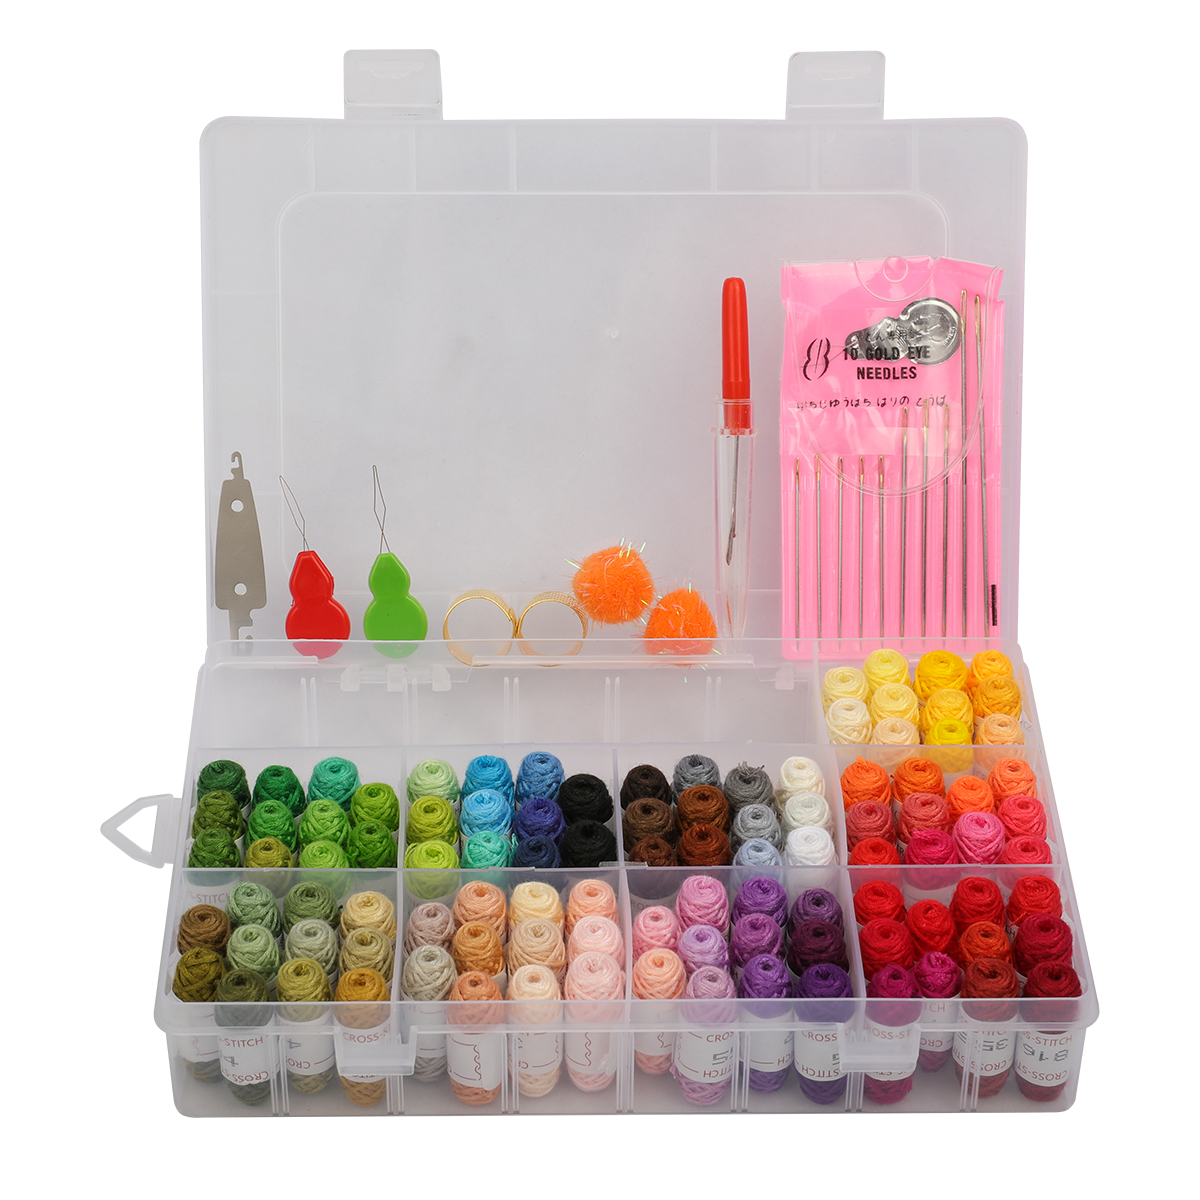 100 random colors Embroidery thread Cross Stitch Thread Embroidery kit with Organizer Storage Box